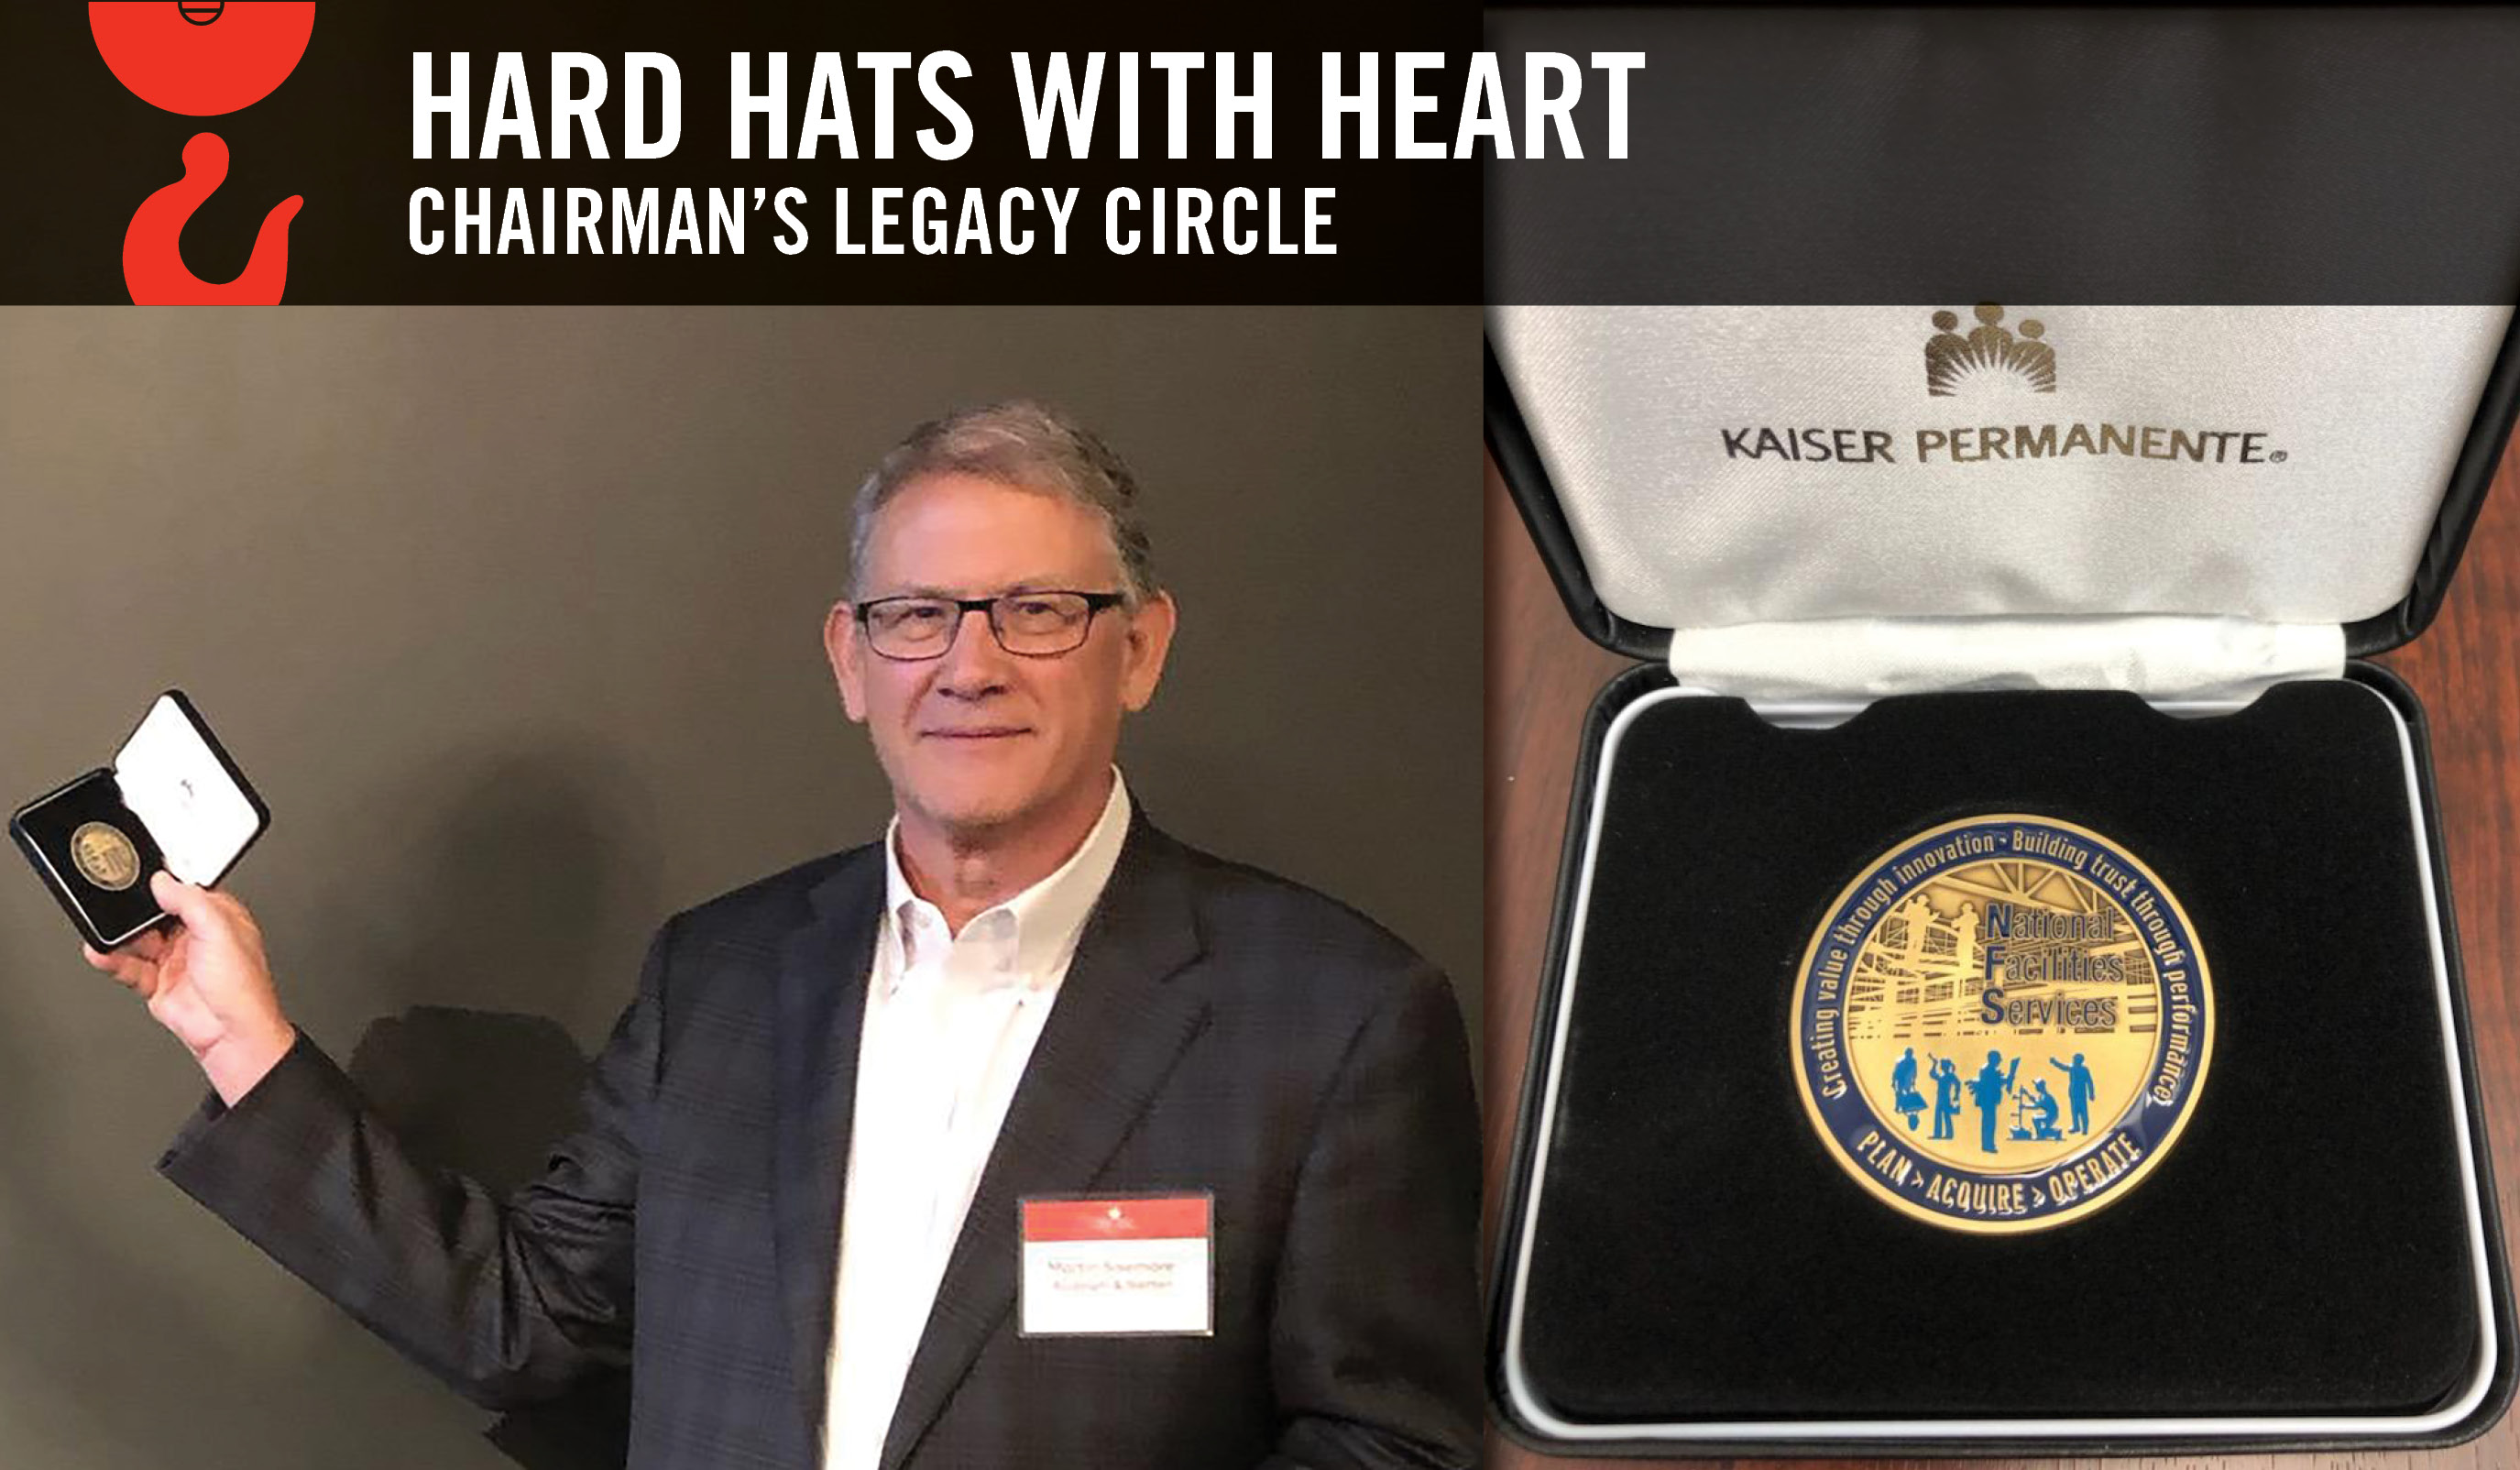 Hard Hats with Heart Chairman's Legacy Circle